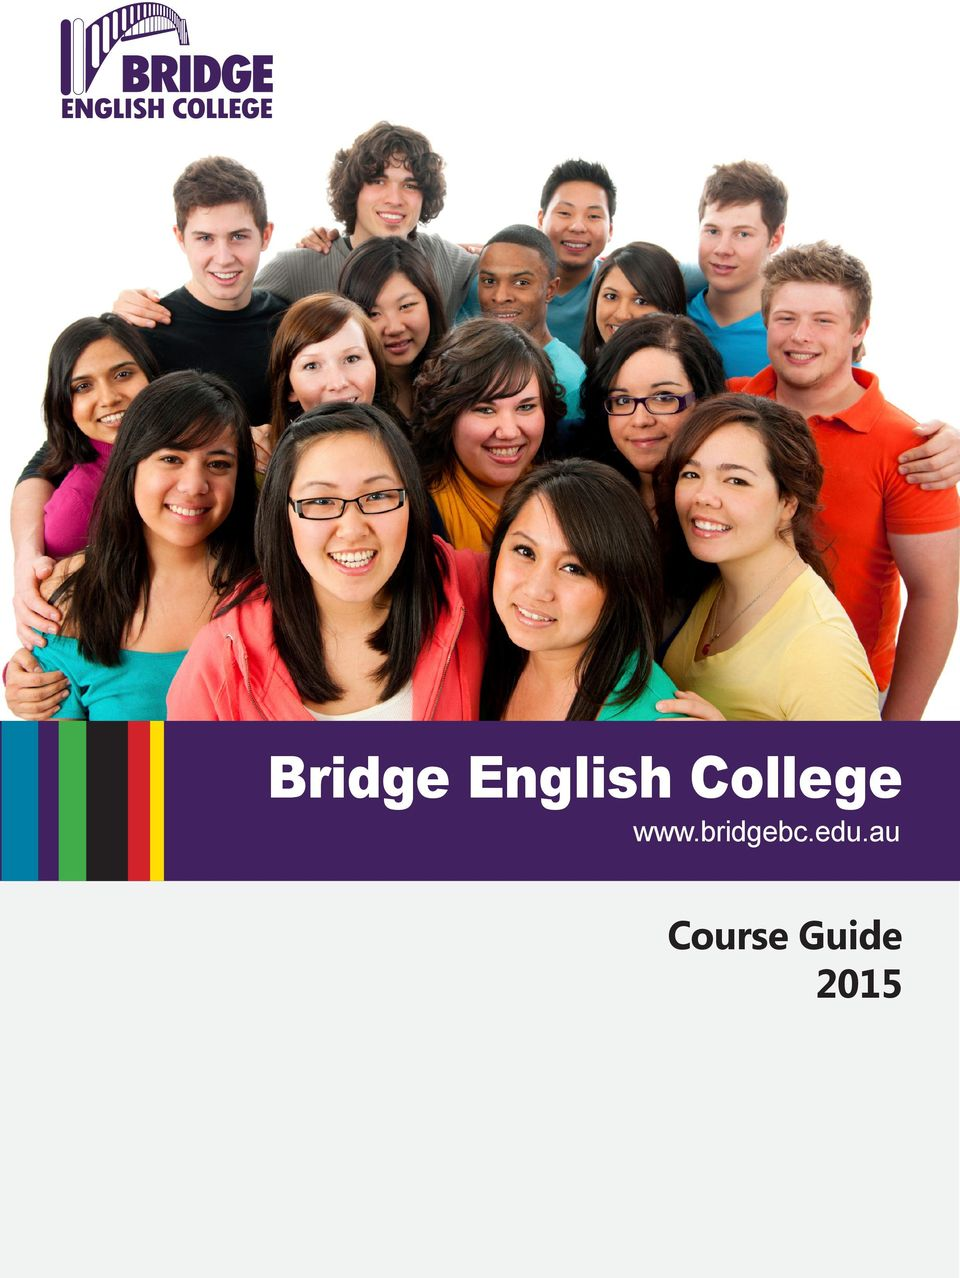 bridgebc.edu.